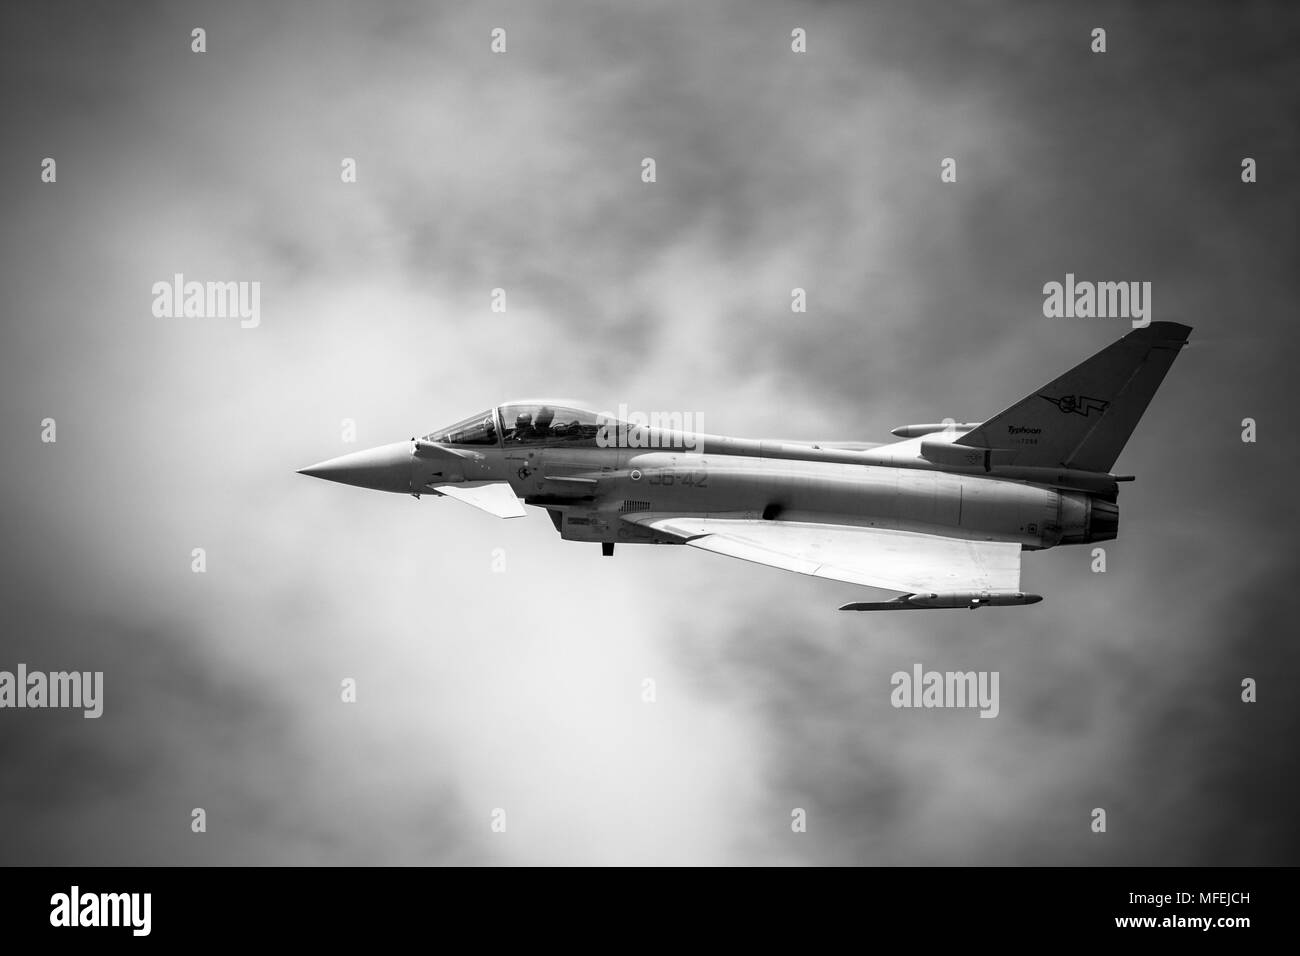 A dramatic black & white low fly pass of the Italian Air Force Eurofighter Typhoon in heavy mist and cloud on a warm wet day Stock Photo